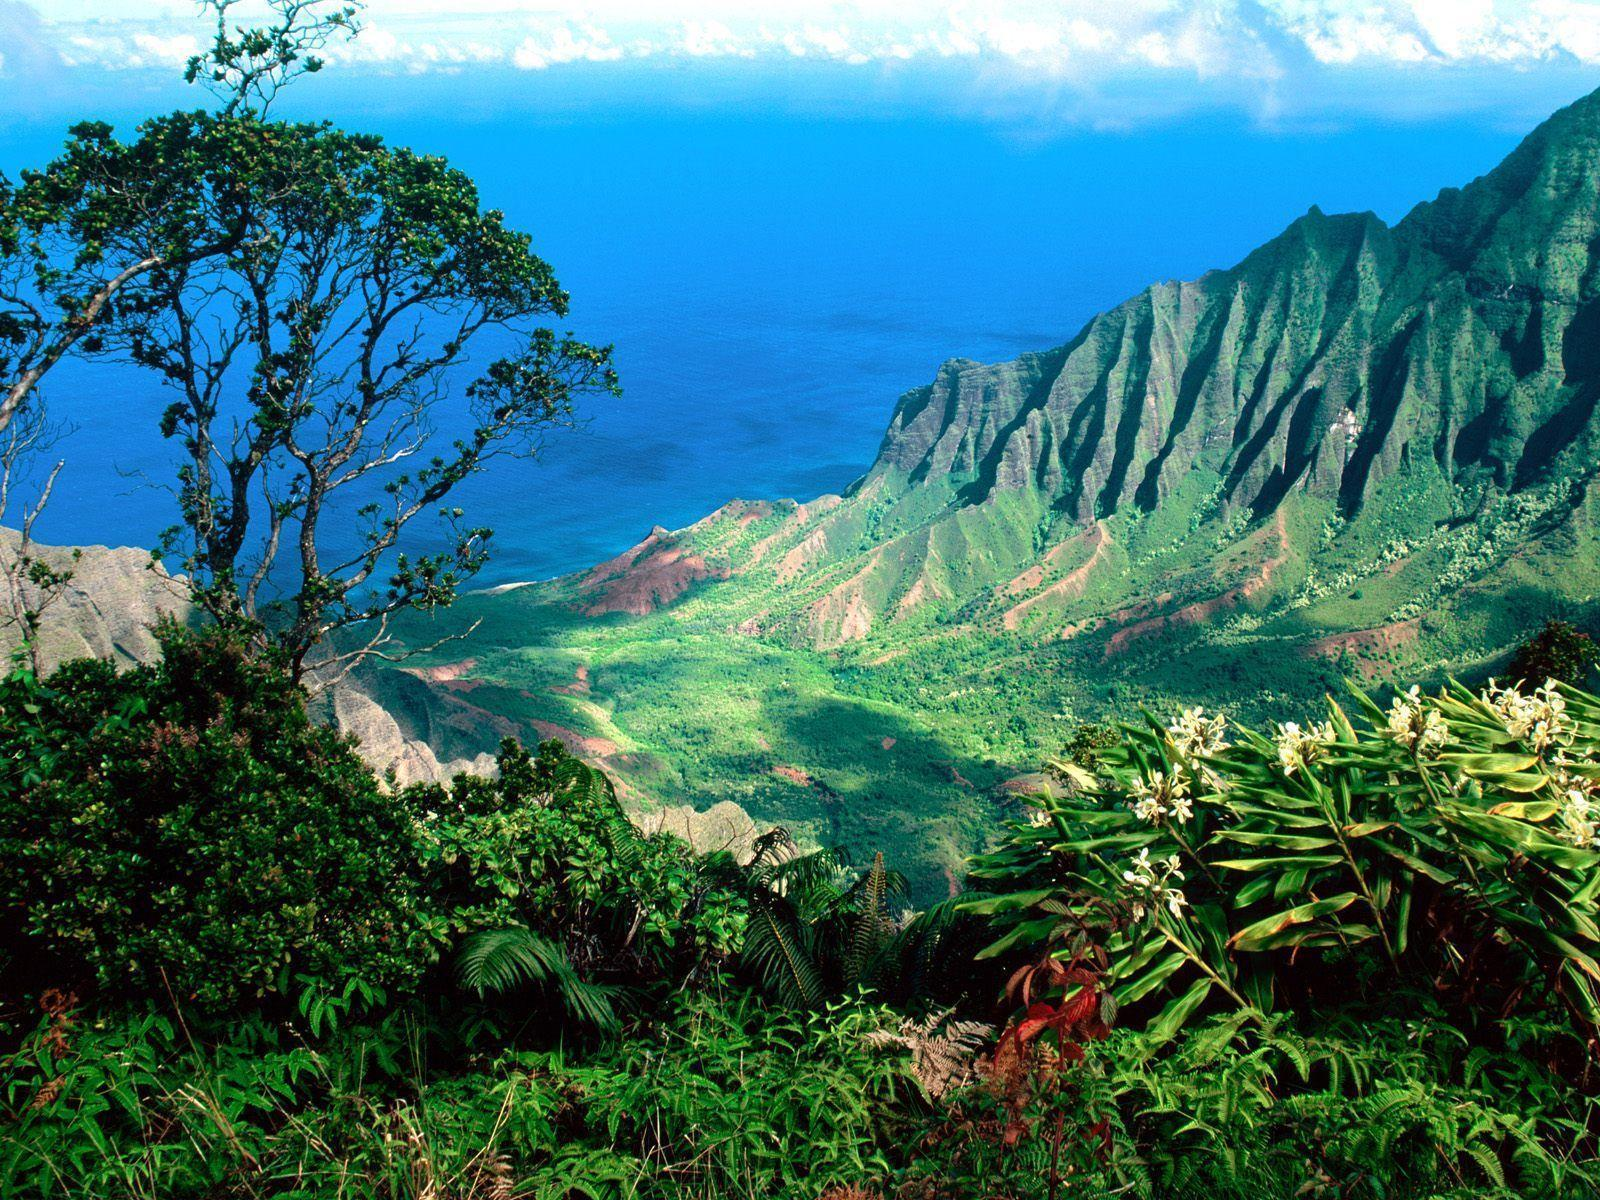 Desktop Wallpapers · Gallery · Nature · Kalalau Valley, Kauai